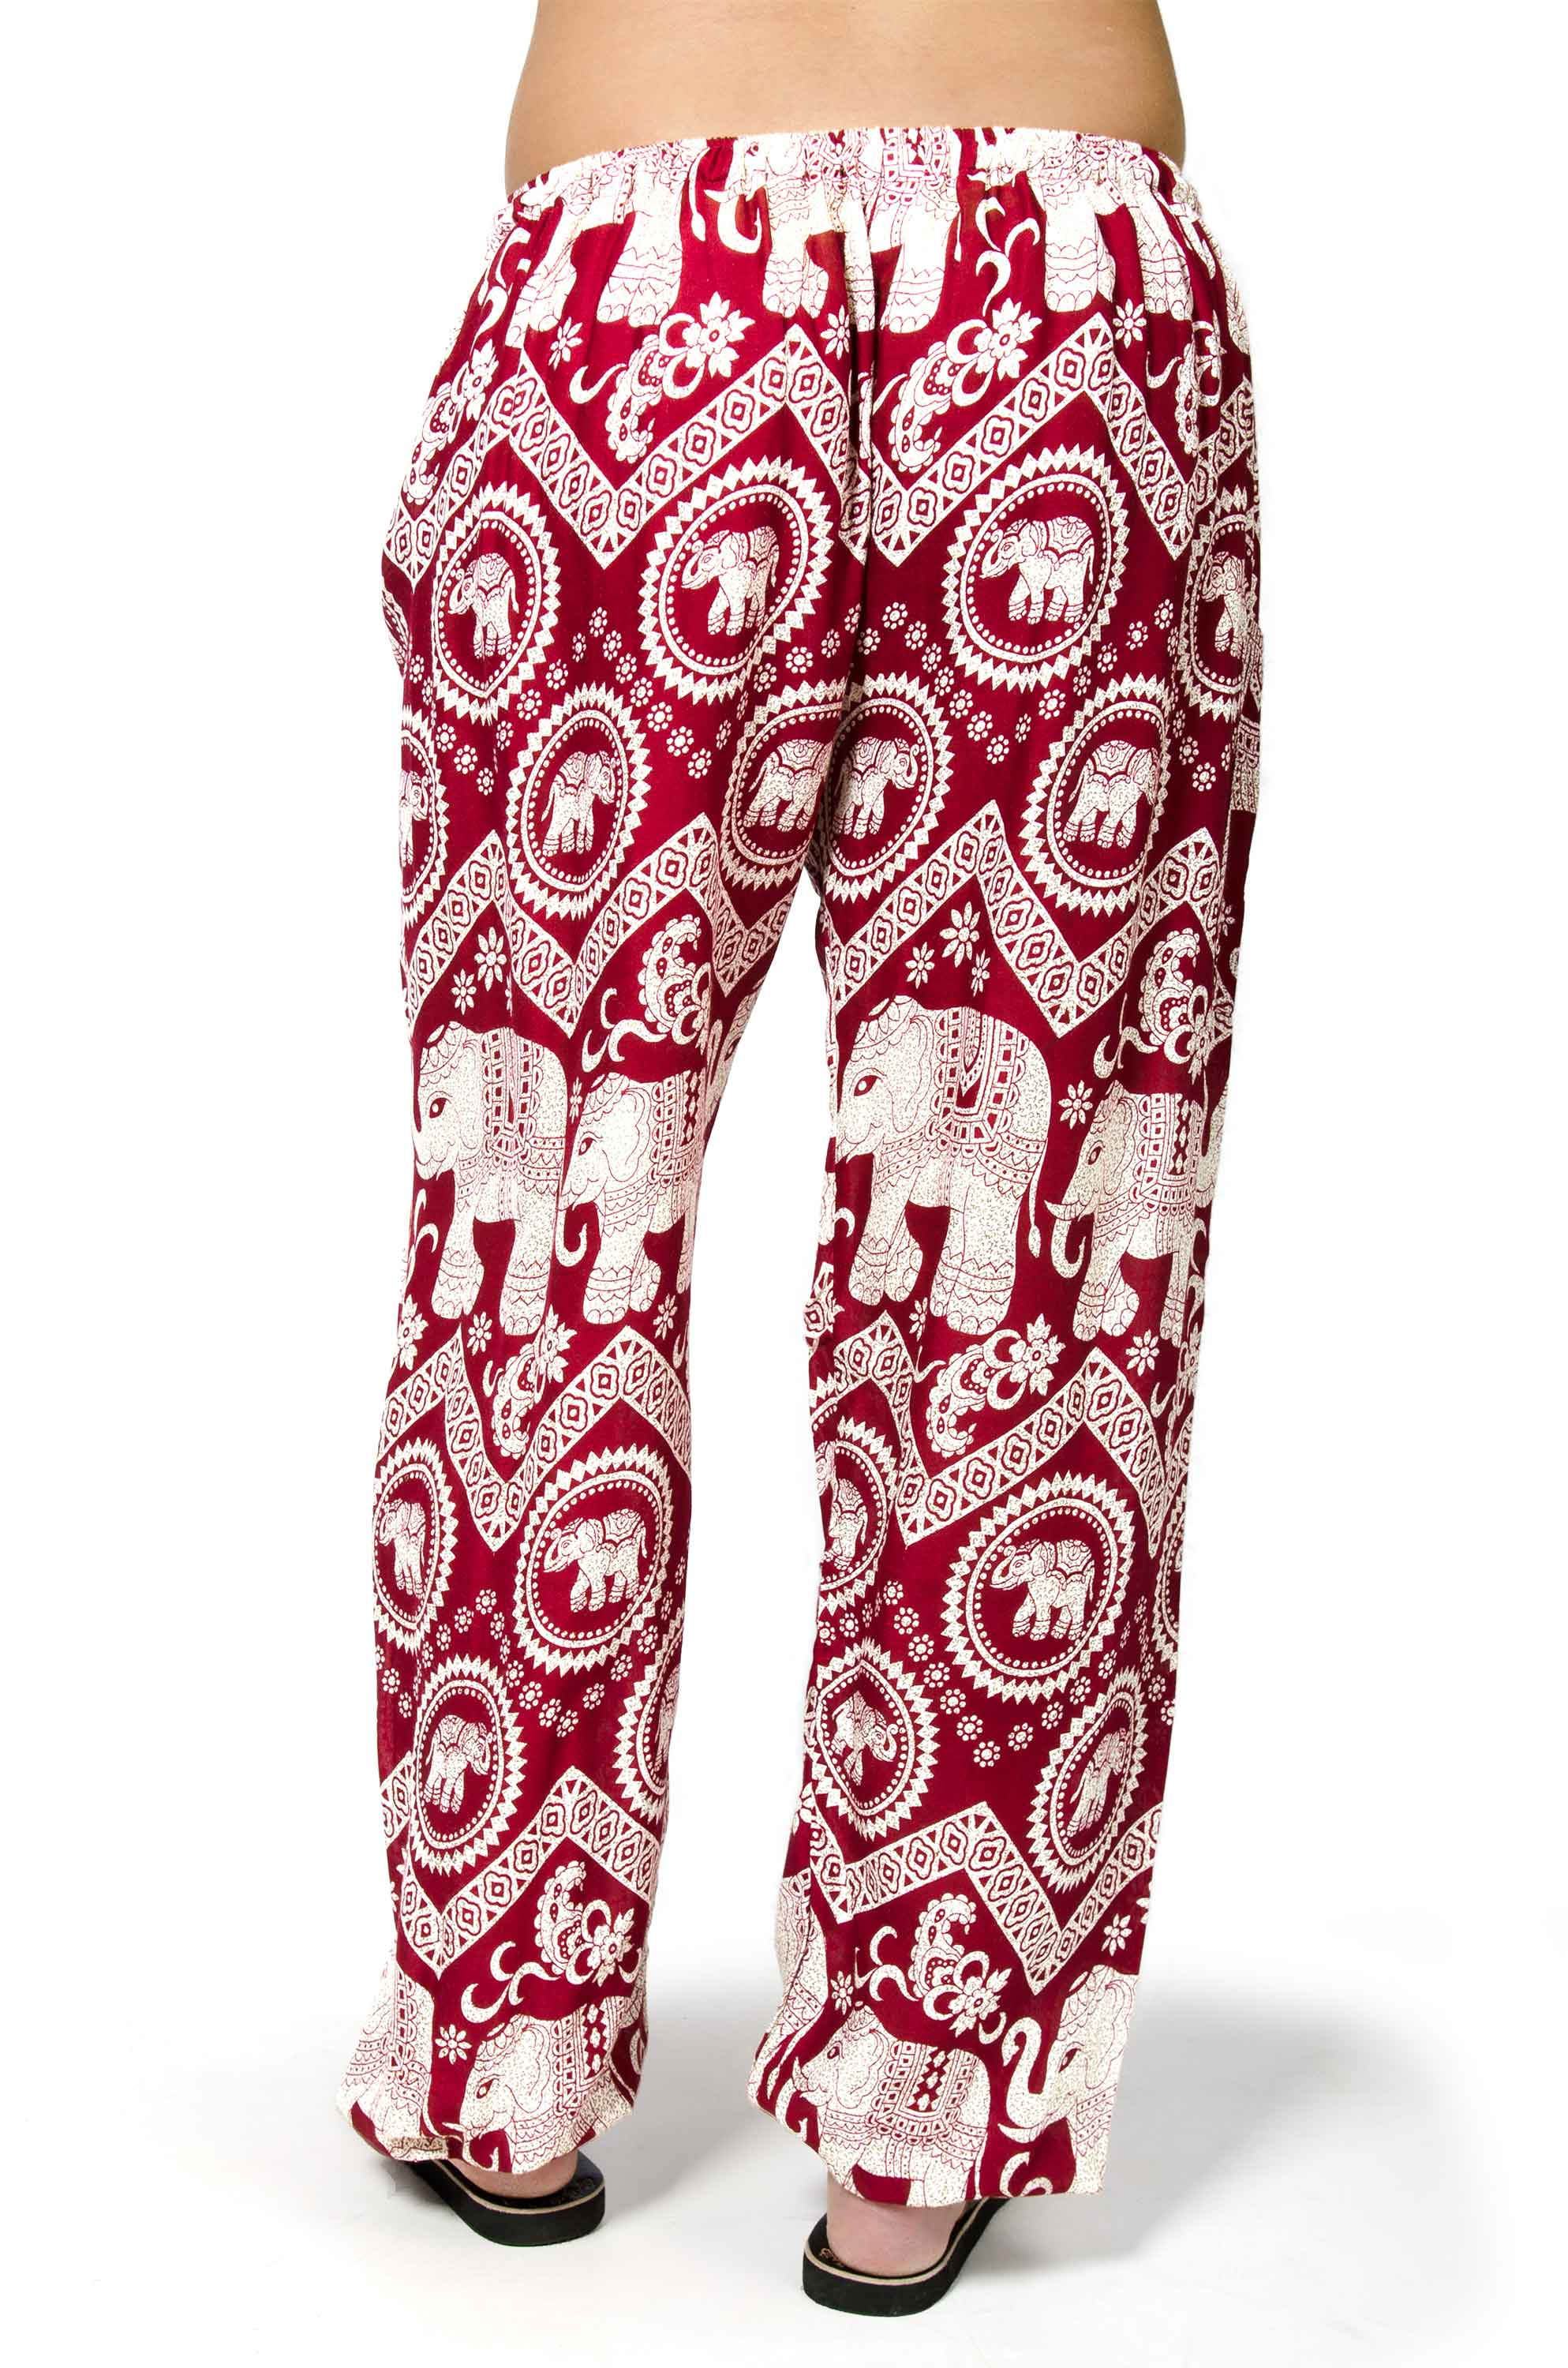 Elephant Print Drawstring Pants - Red